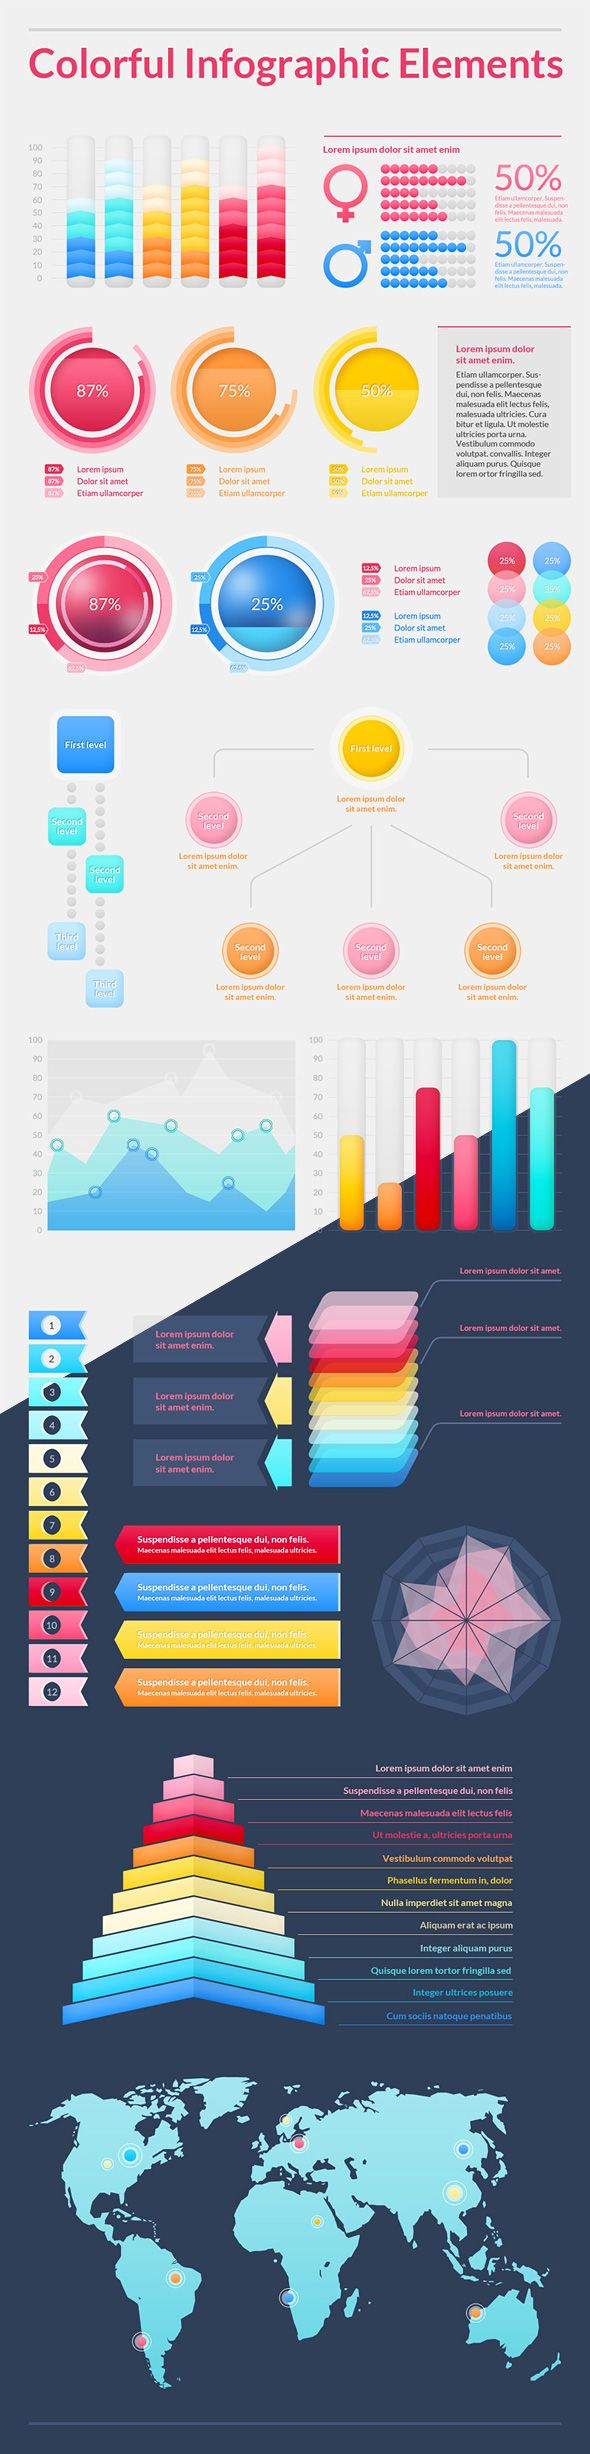 Colorful Infographic Elements -- I think a resume or wedding invite as an info graphic would be awesome